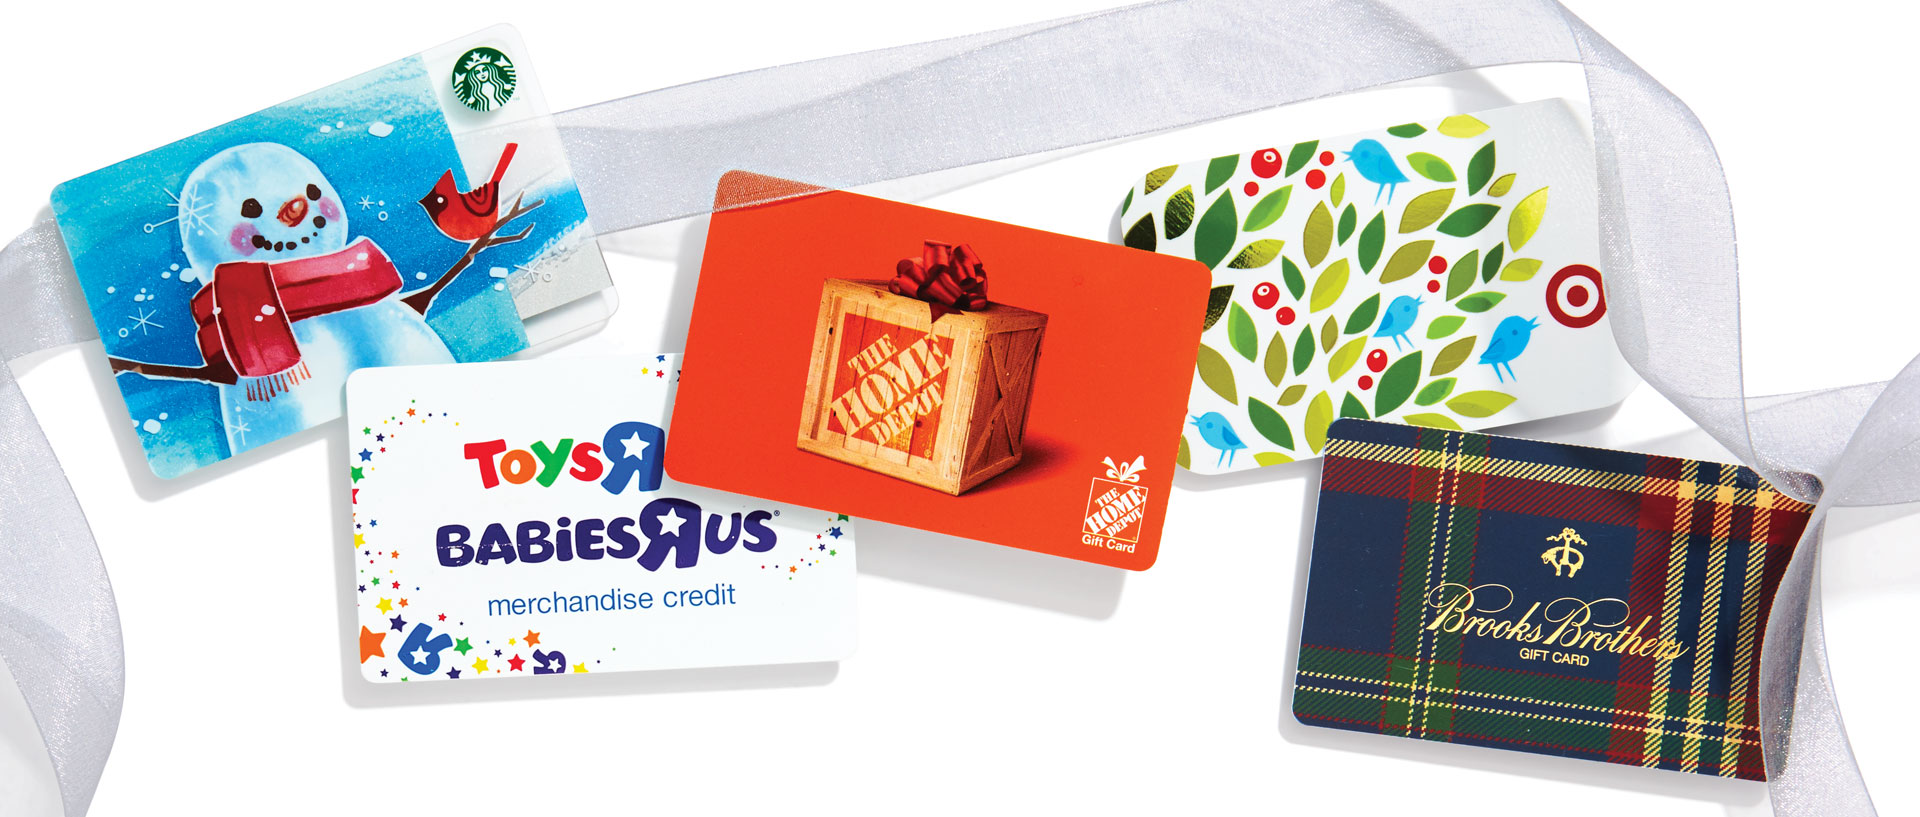 How to Exchange Gift Cards and Get the Most Cash Consumer Reports